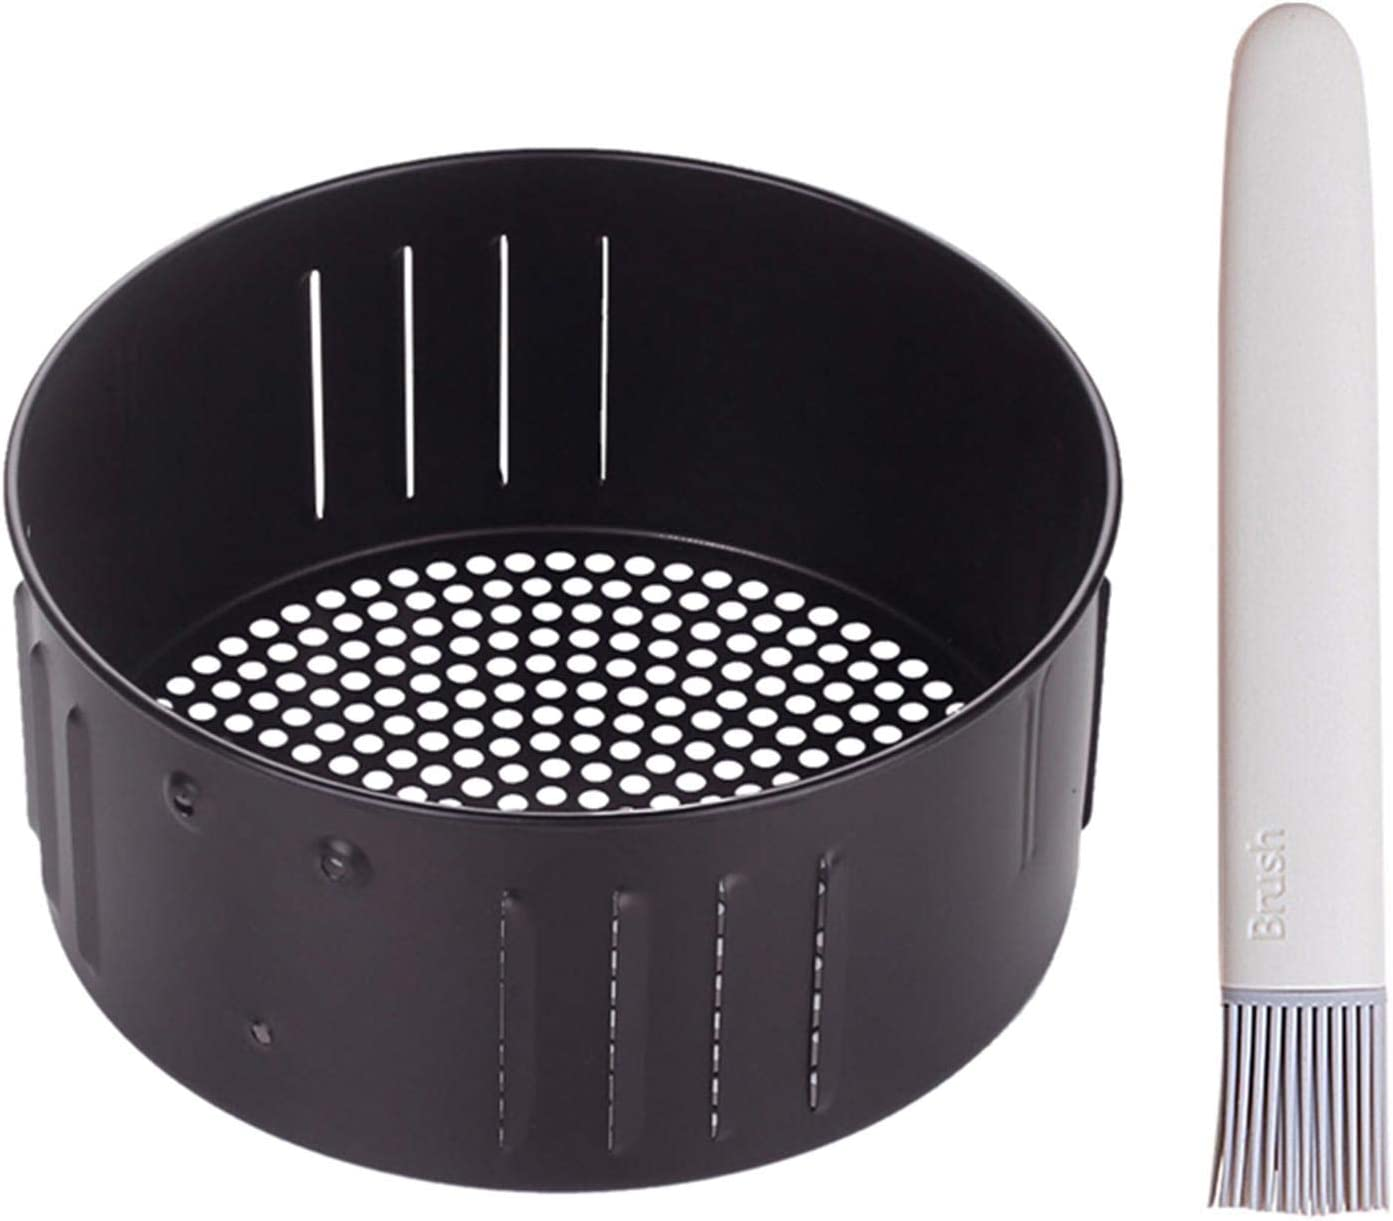 Air Fryer Replacement Basket 2.7QT Universal Non Stick Round Cooking Cast Iron Baking Tray, Kitchen Roasting Tin Cooking Drain Oil Baking Tray (2.6 L)